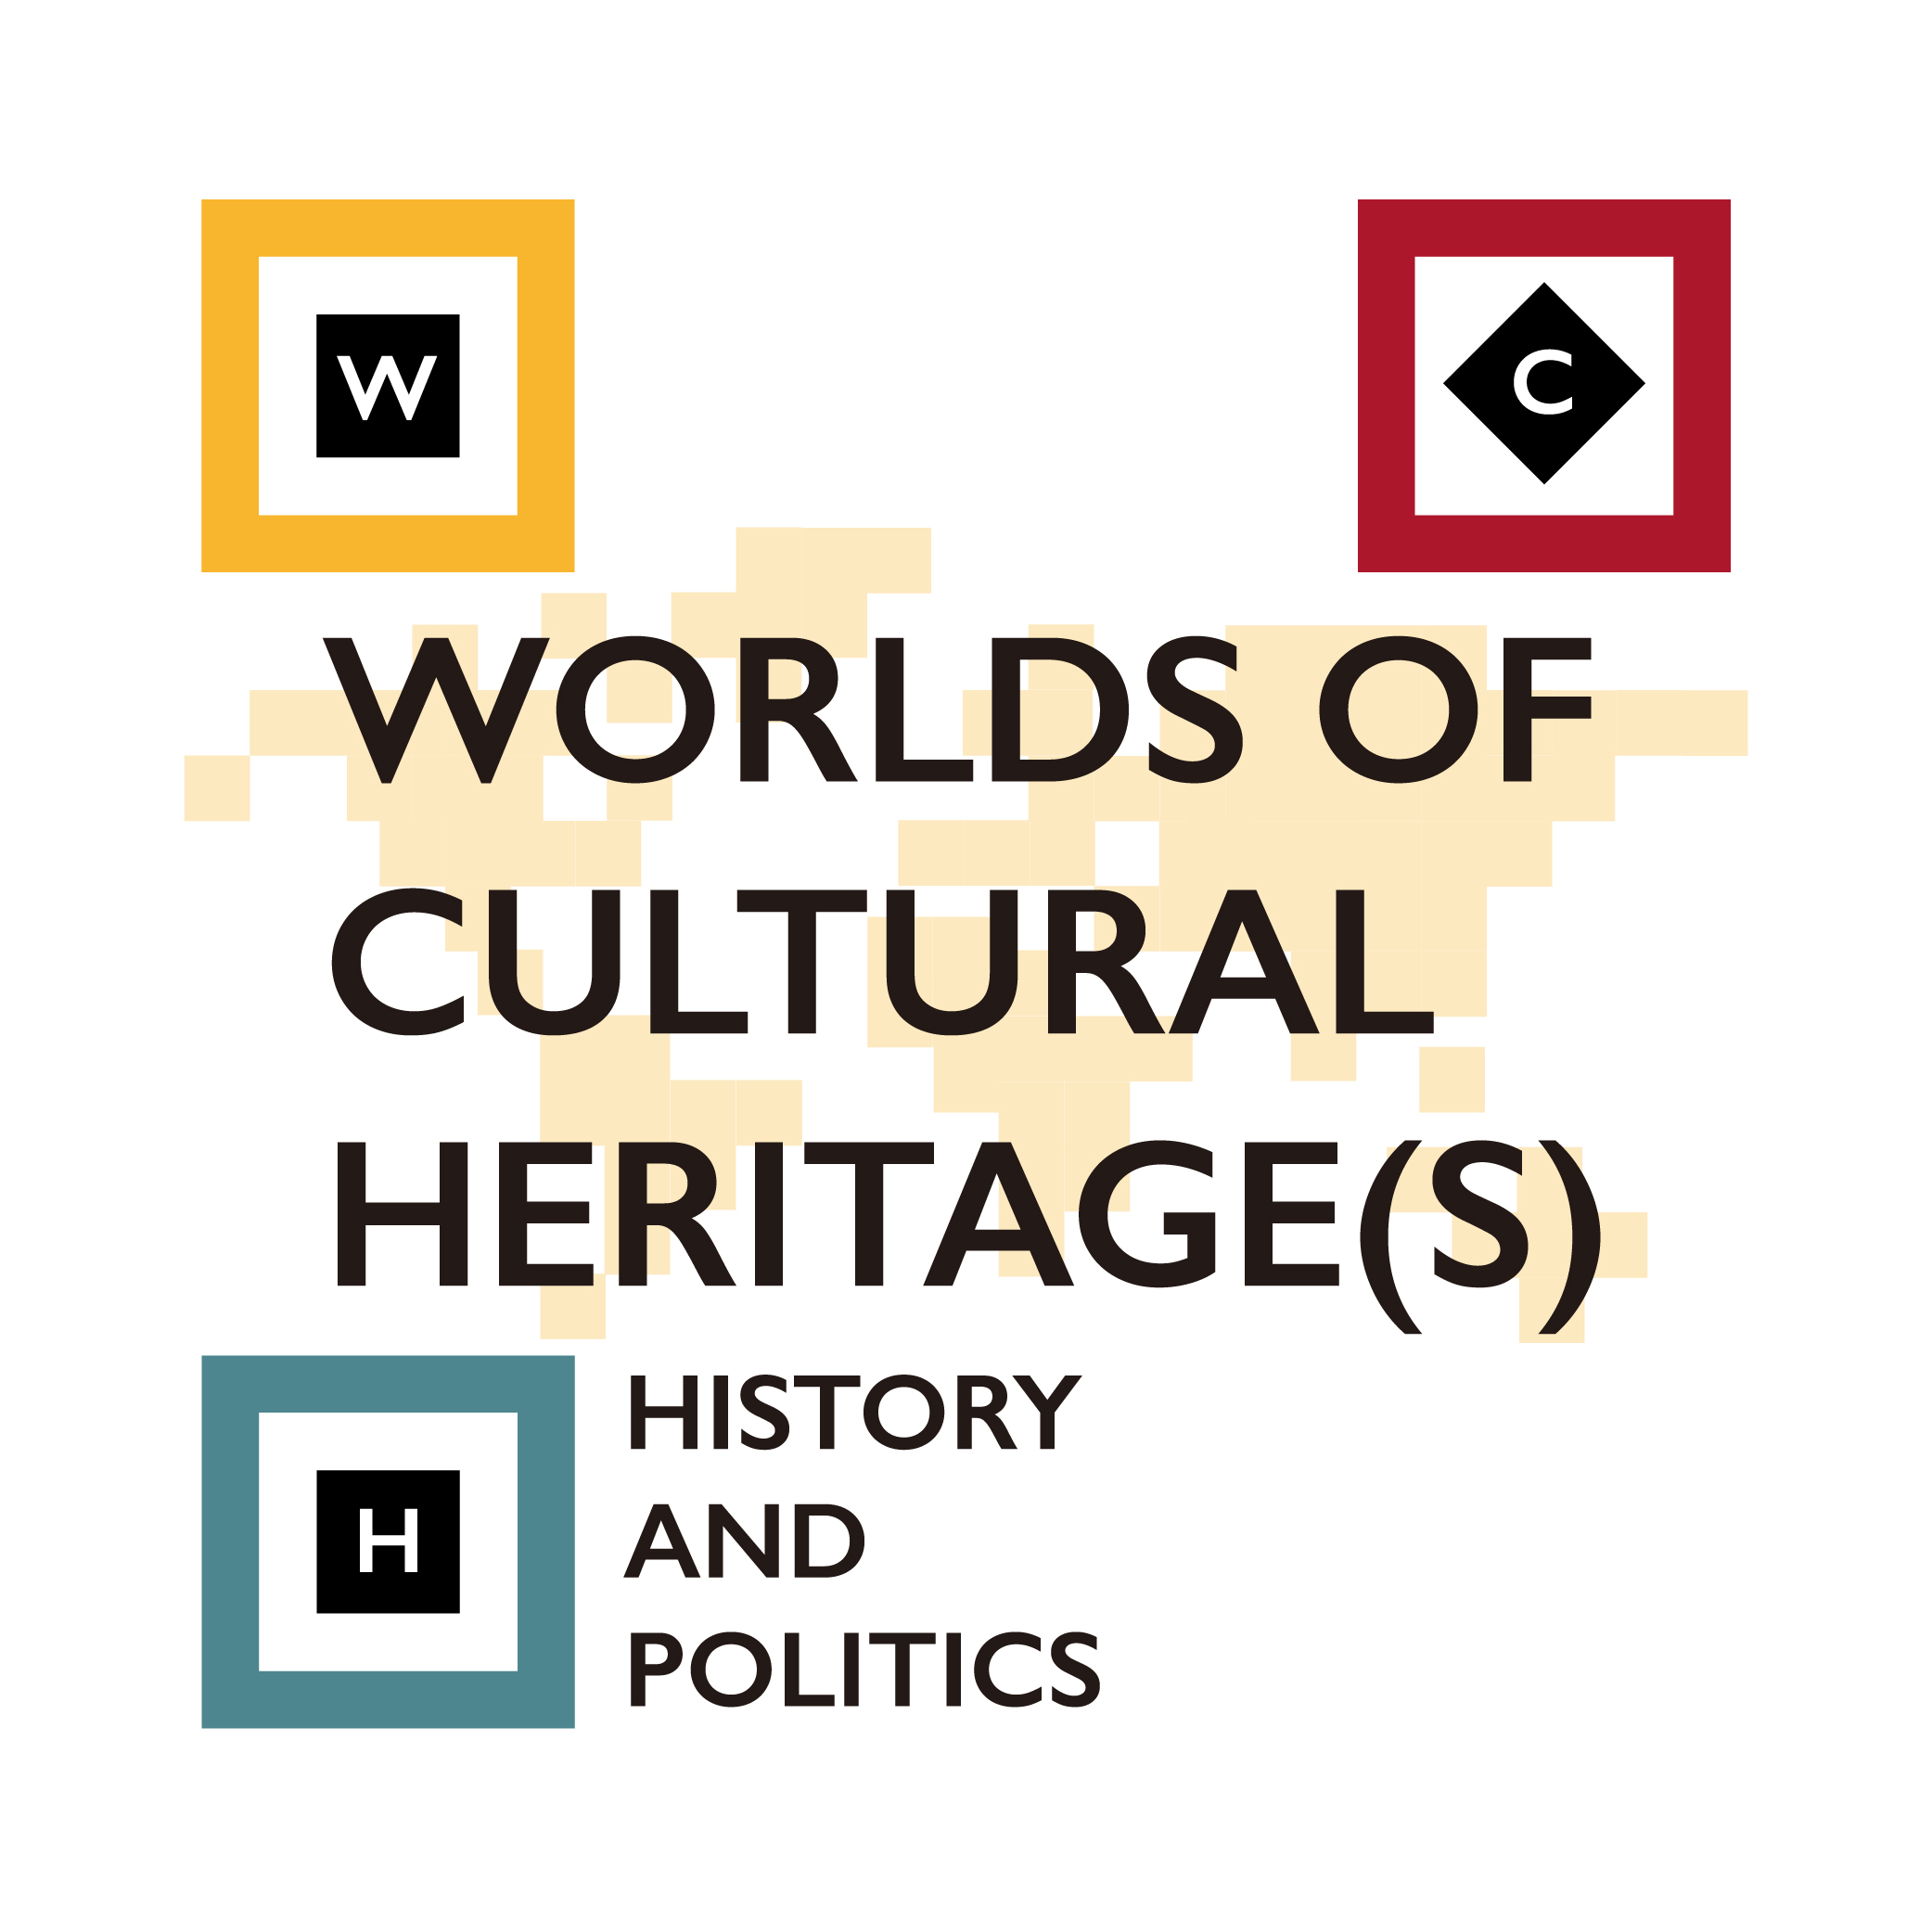 "Worlds of Cultural Heritage(s): history and politics<span id=""edit_19653""><script>$(function() { $('#edit_19653').load( ""/myces/user/editobj.php?tipo=evento&id=19653"" ); });</script></span>"